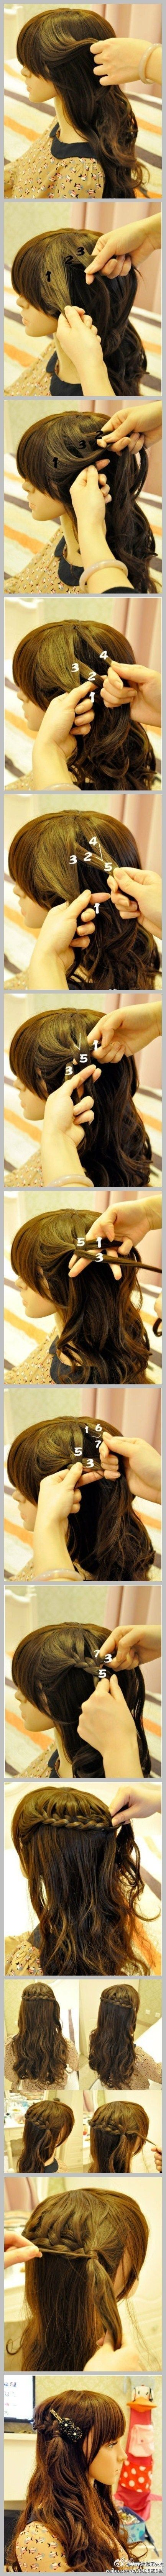 best Hairstyles Instructions On How To Do images on Pinterest